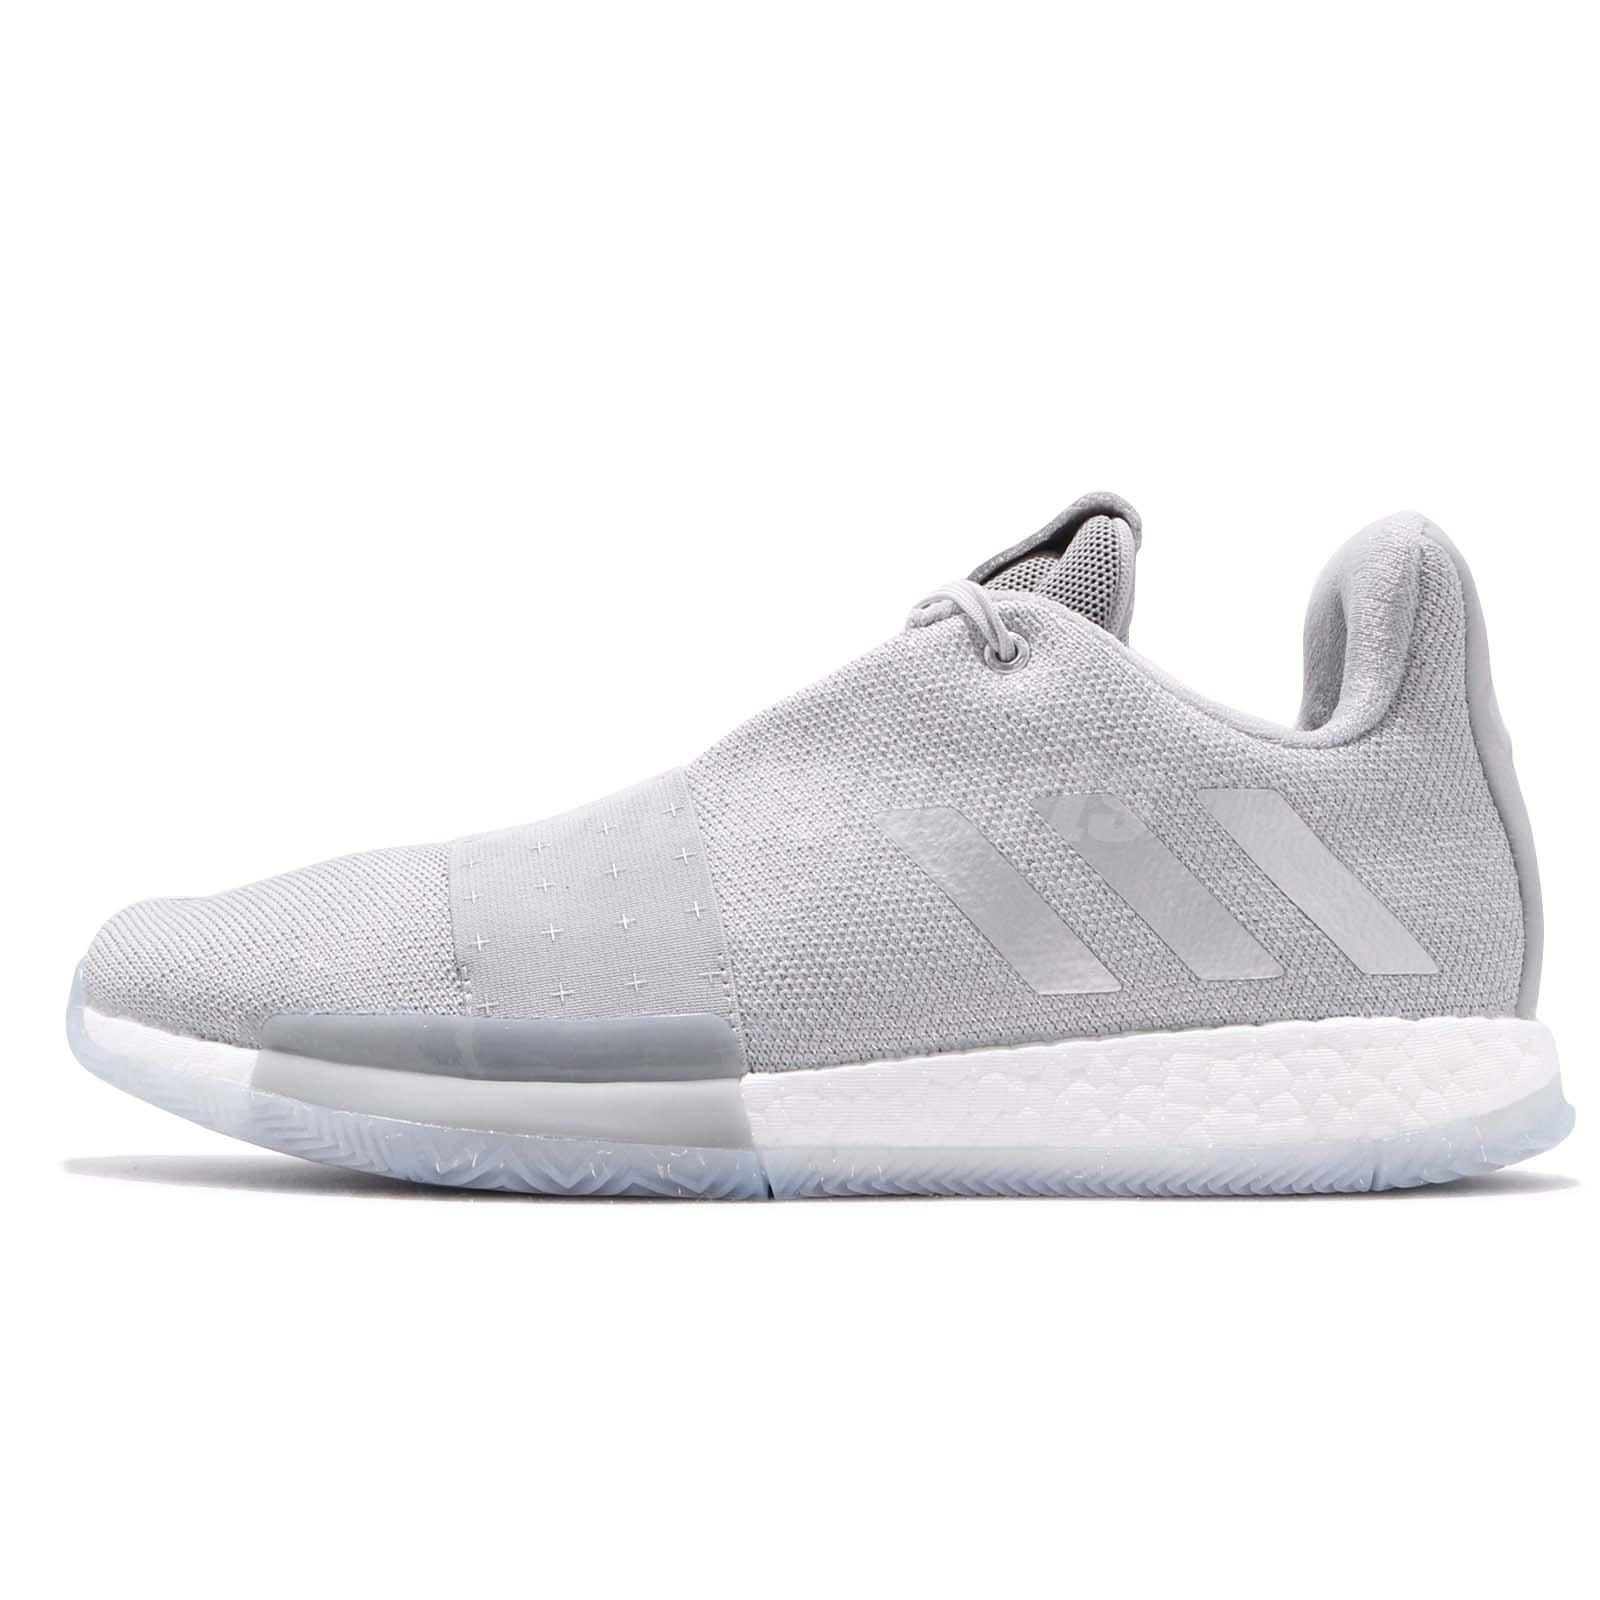 f9db238db776 adidas Harden Vol. 3 Boost James Grey White Men Basketball Shoes Sneakers  F36443